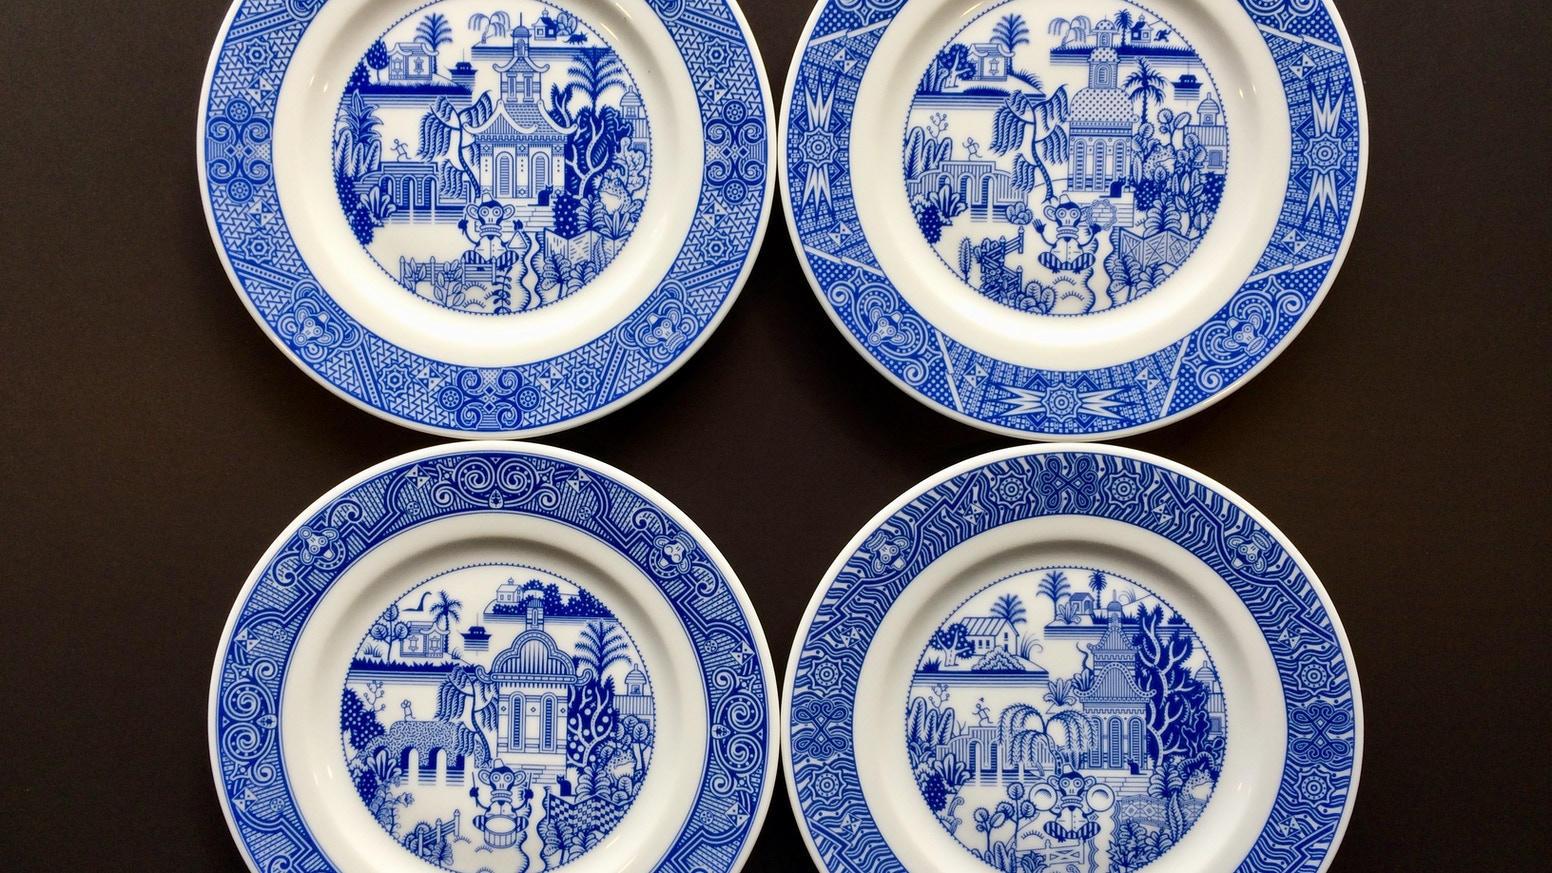 Petite porcelain plates with calamities—monkey percussionists and more.